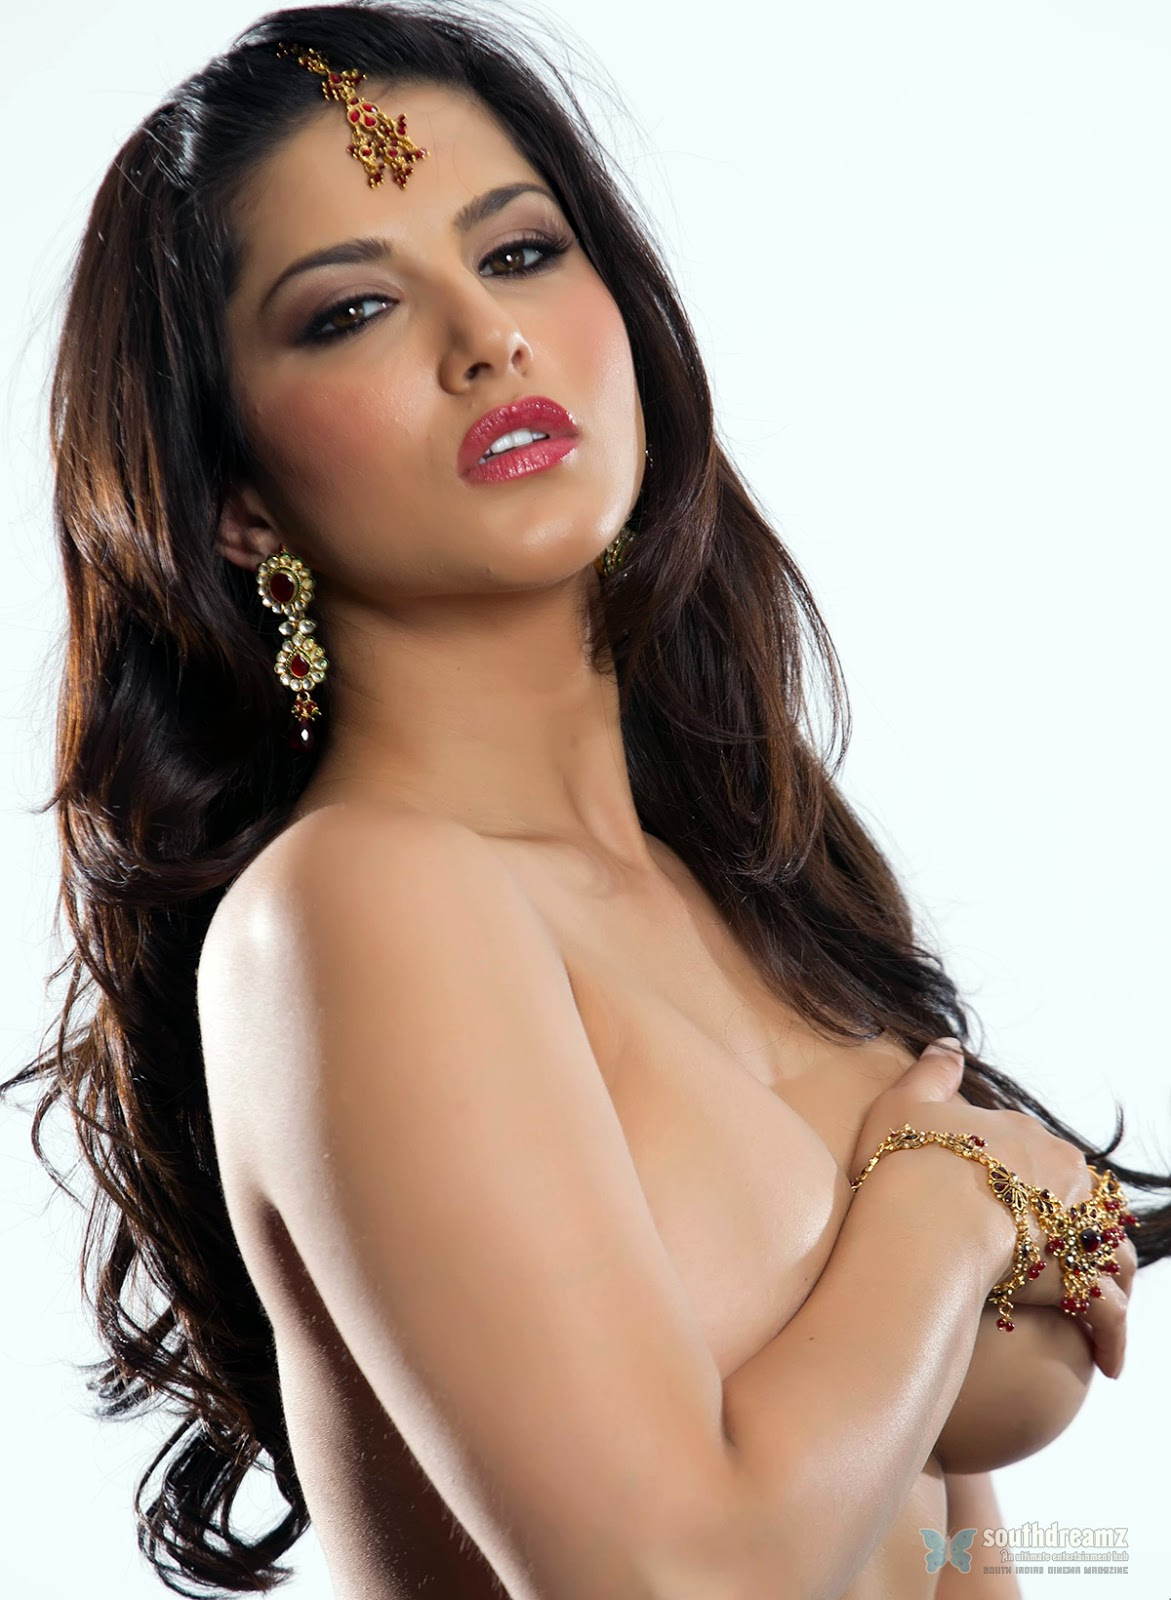 Sunny Leone  Latest Without Clothes Wallpapers  Free -7432